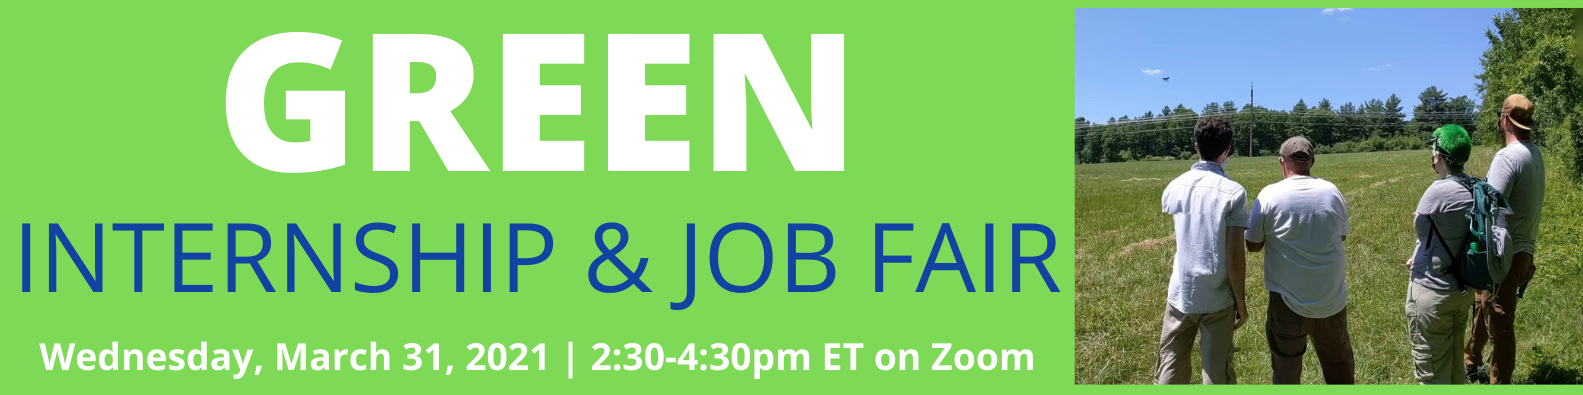 Green Internship & Job Fair Spring 2021